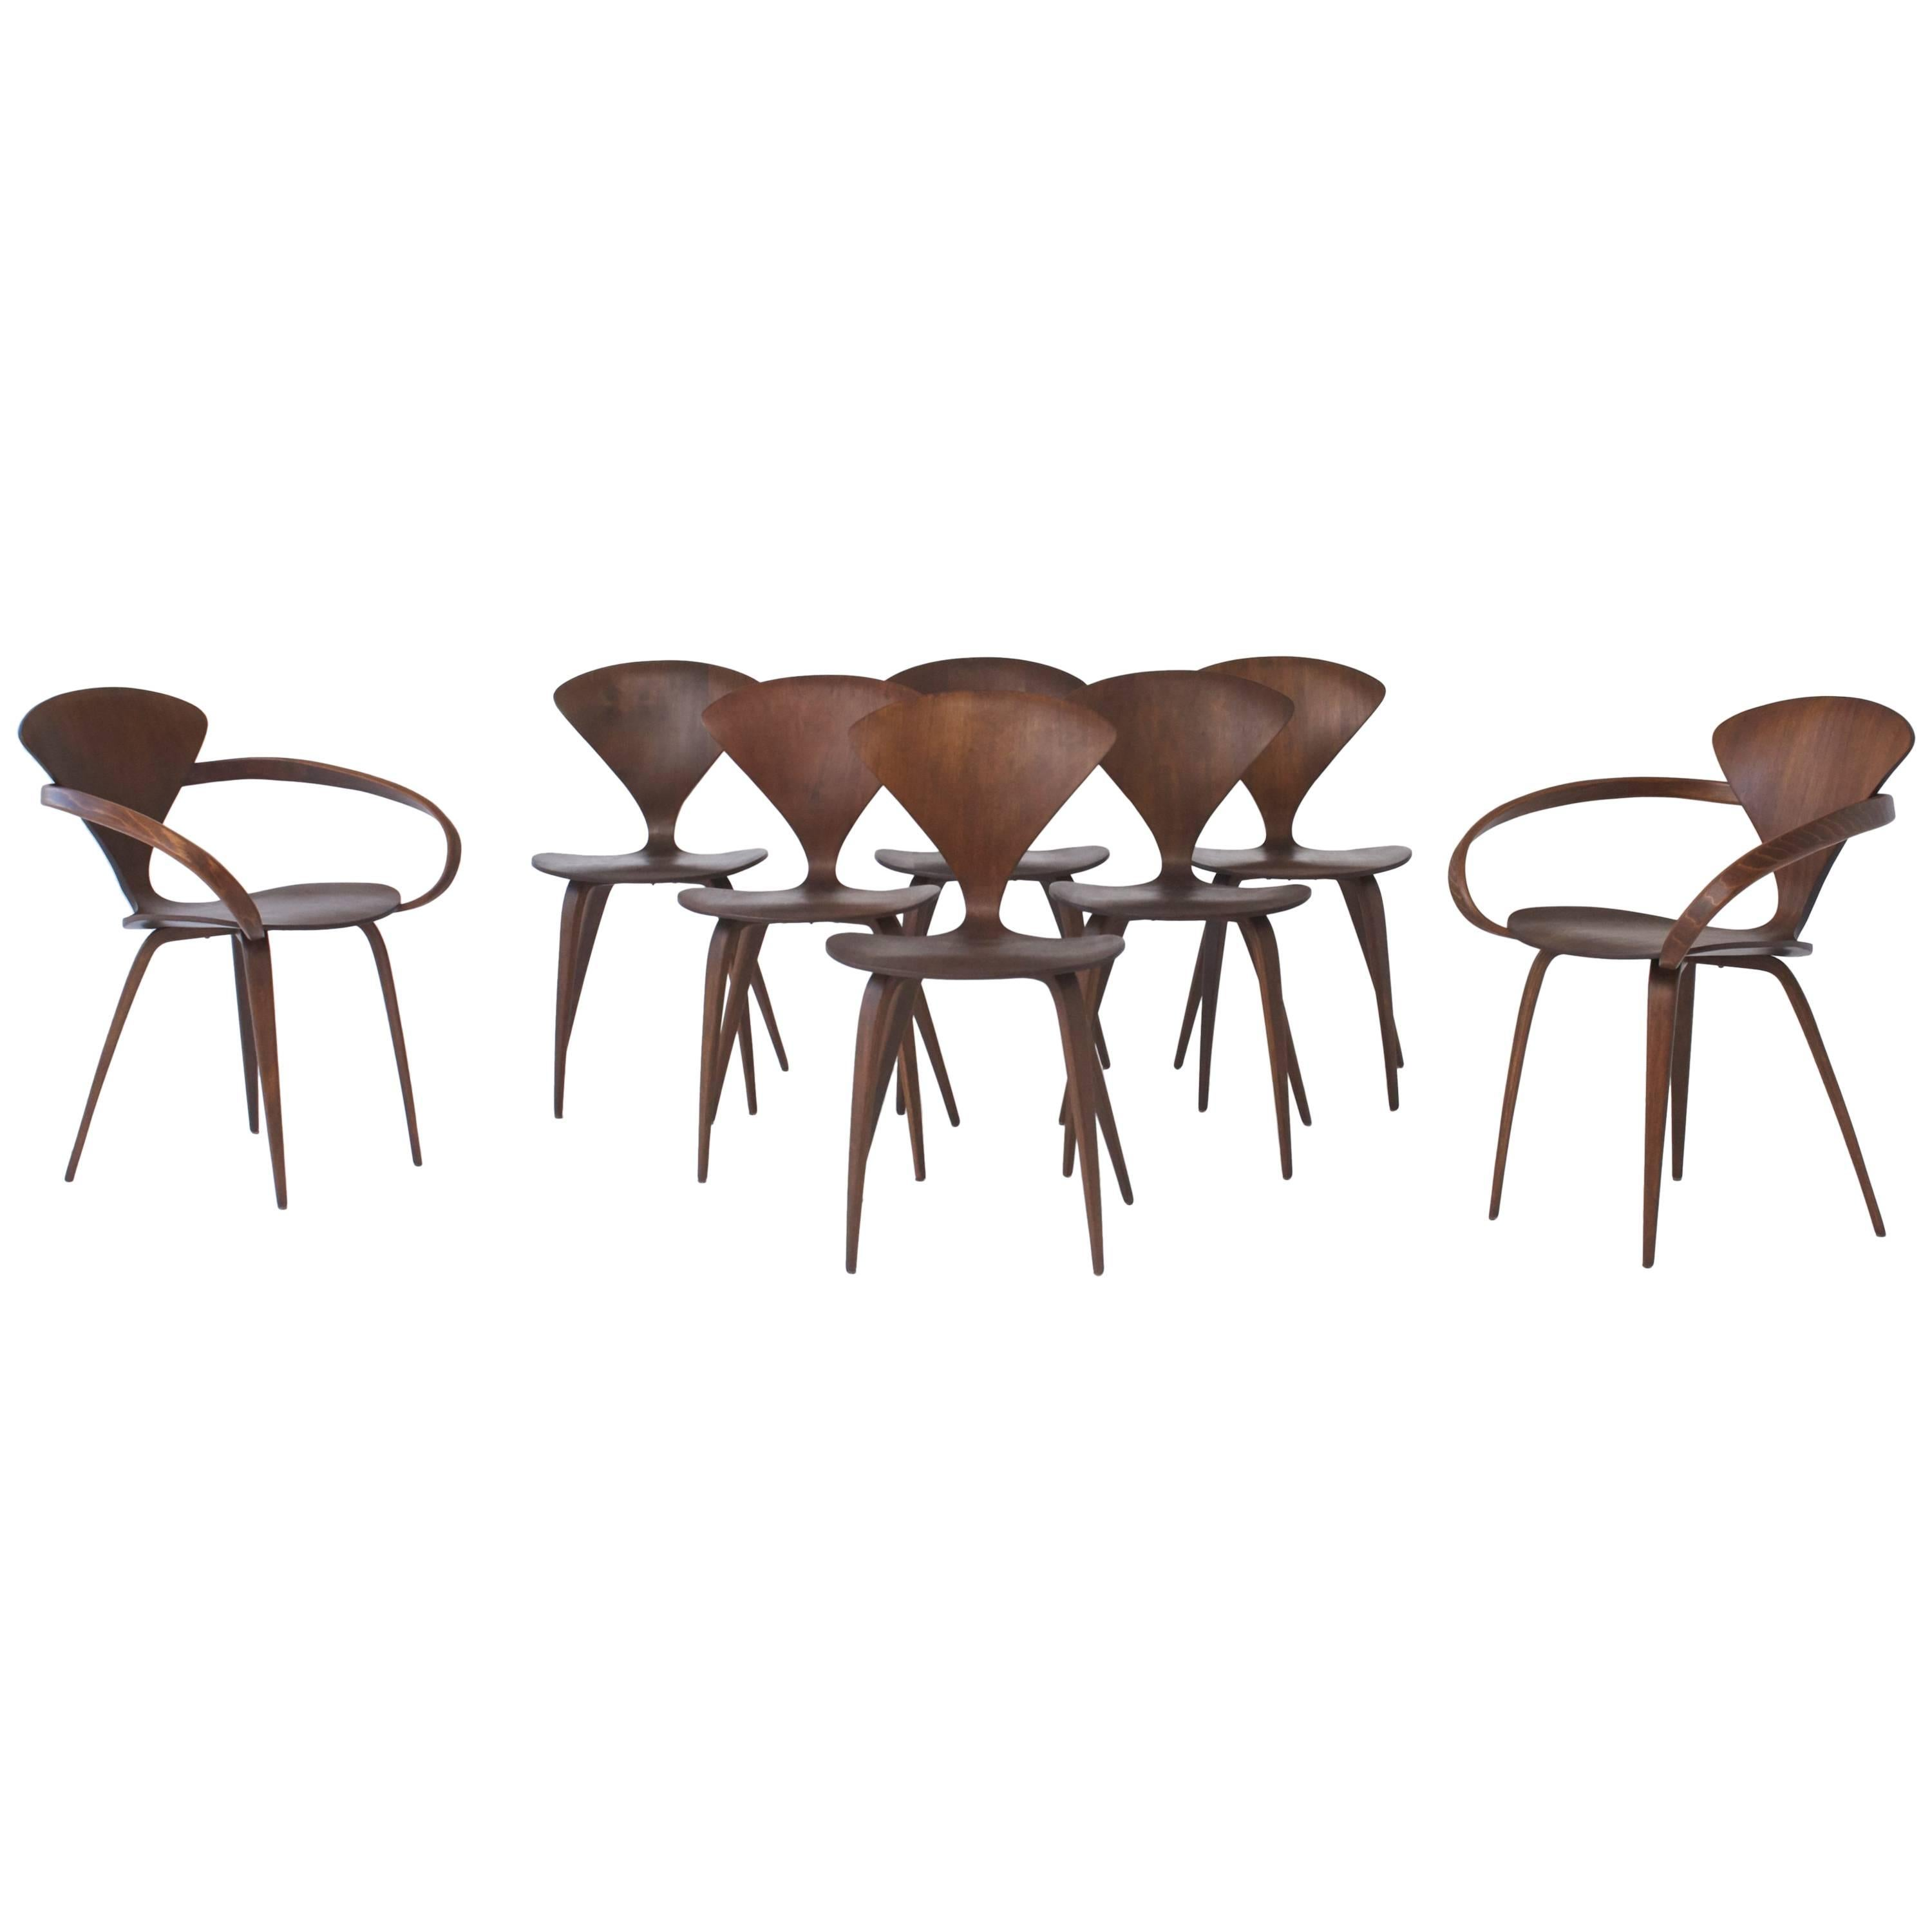 Set of Eight Norman Cherner Dining Chairs Made by Plycraft in the USA 1960s  sc 1 st  1stDibs & Set of Eight Norman Cherner Dining Chairs Made by Plycraft in the ...